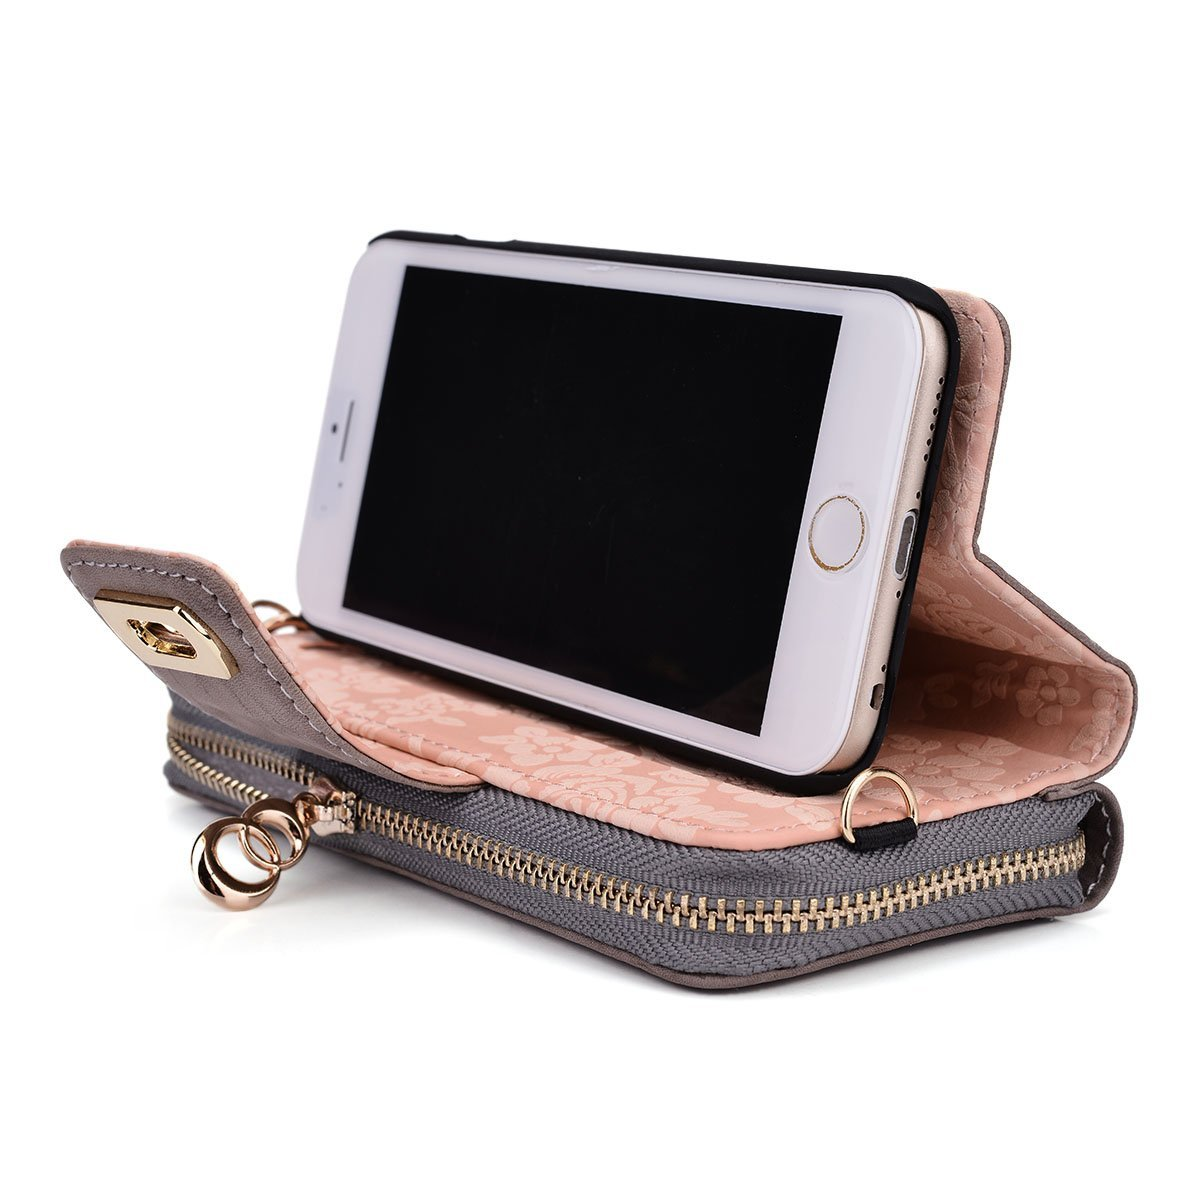 Kroo Genuine Leather wallet case for iphone 6 as gift to your wife